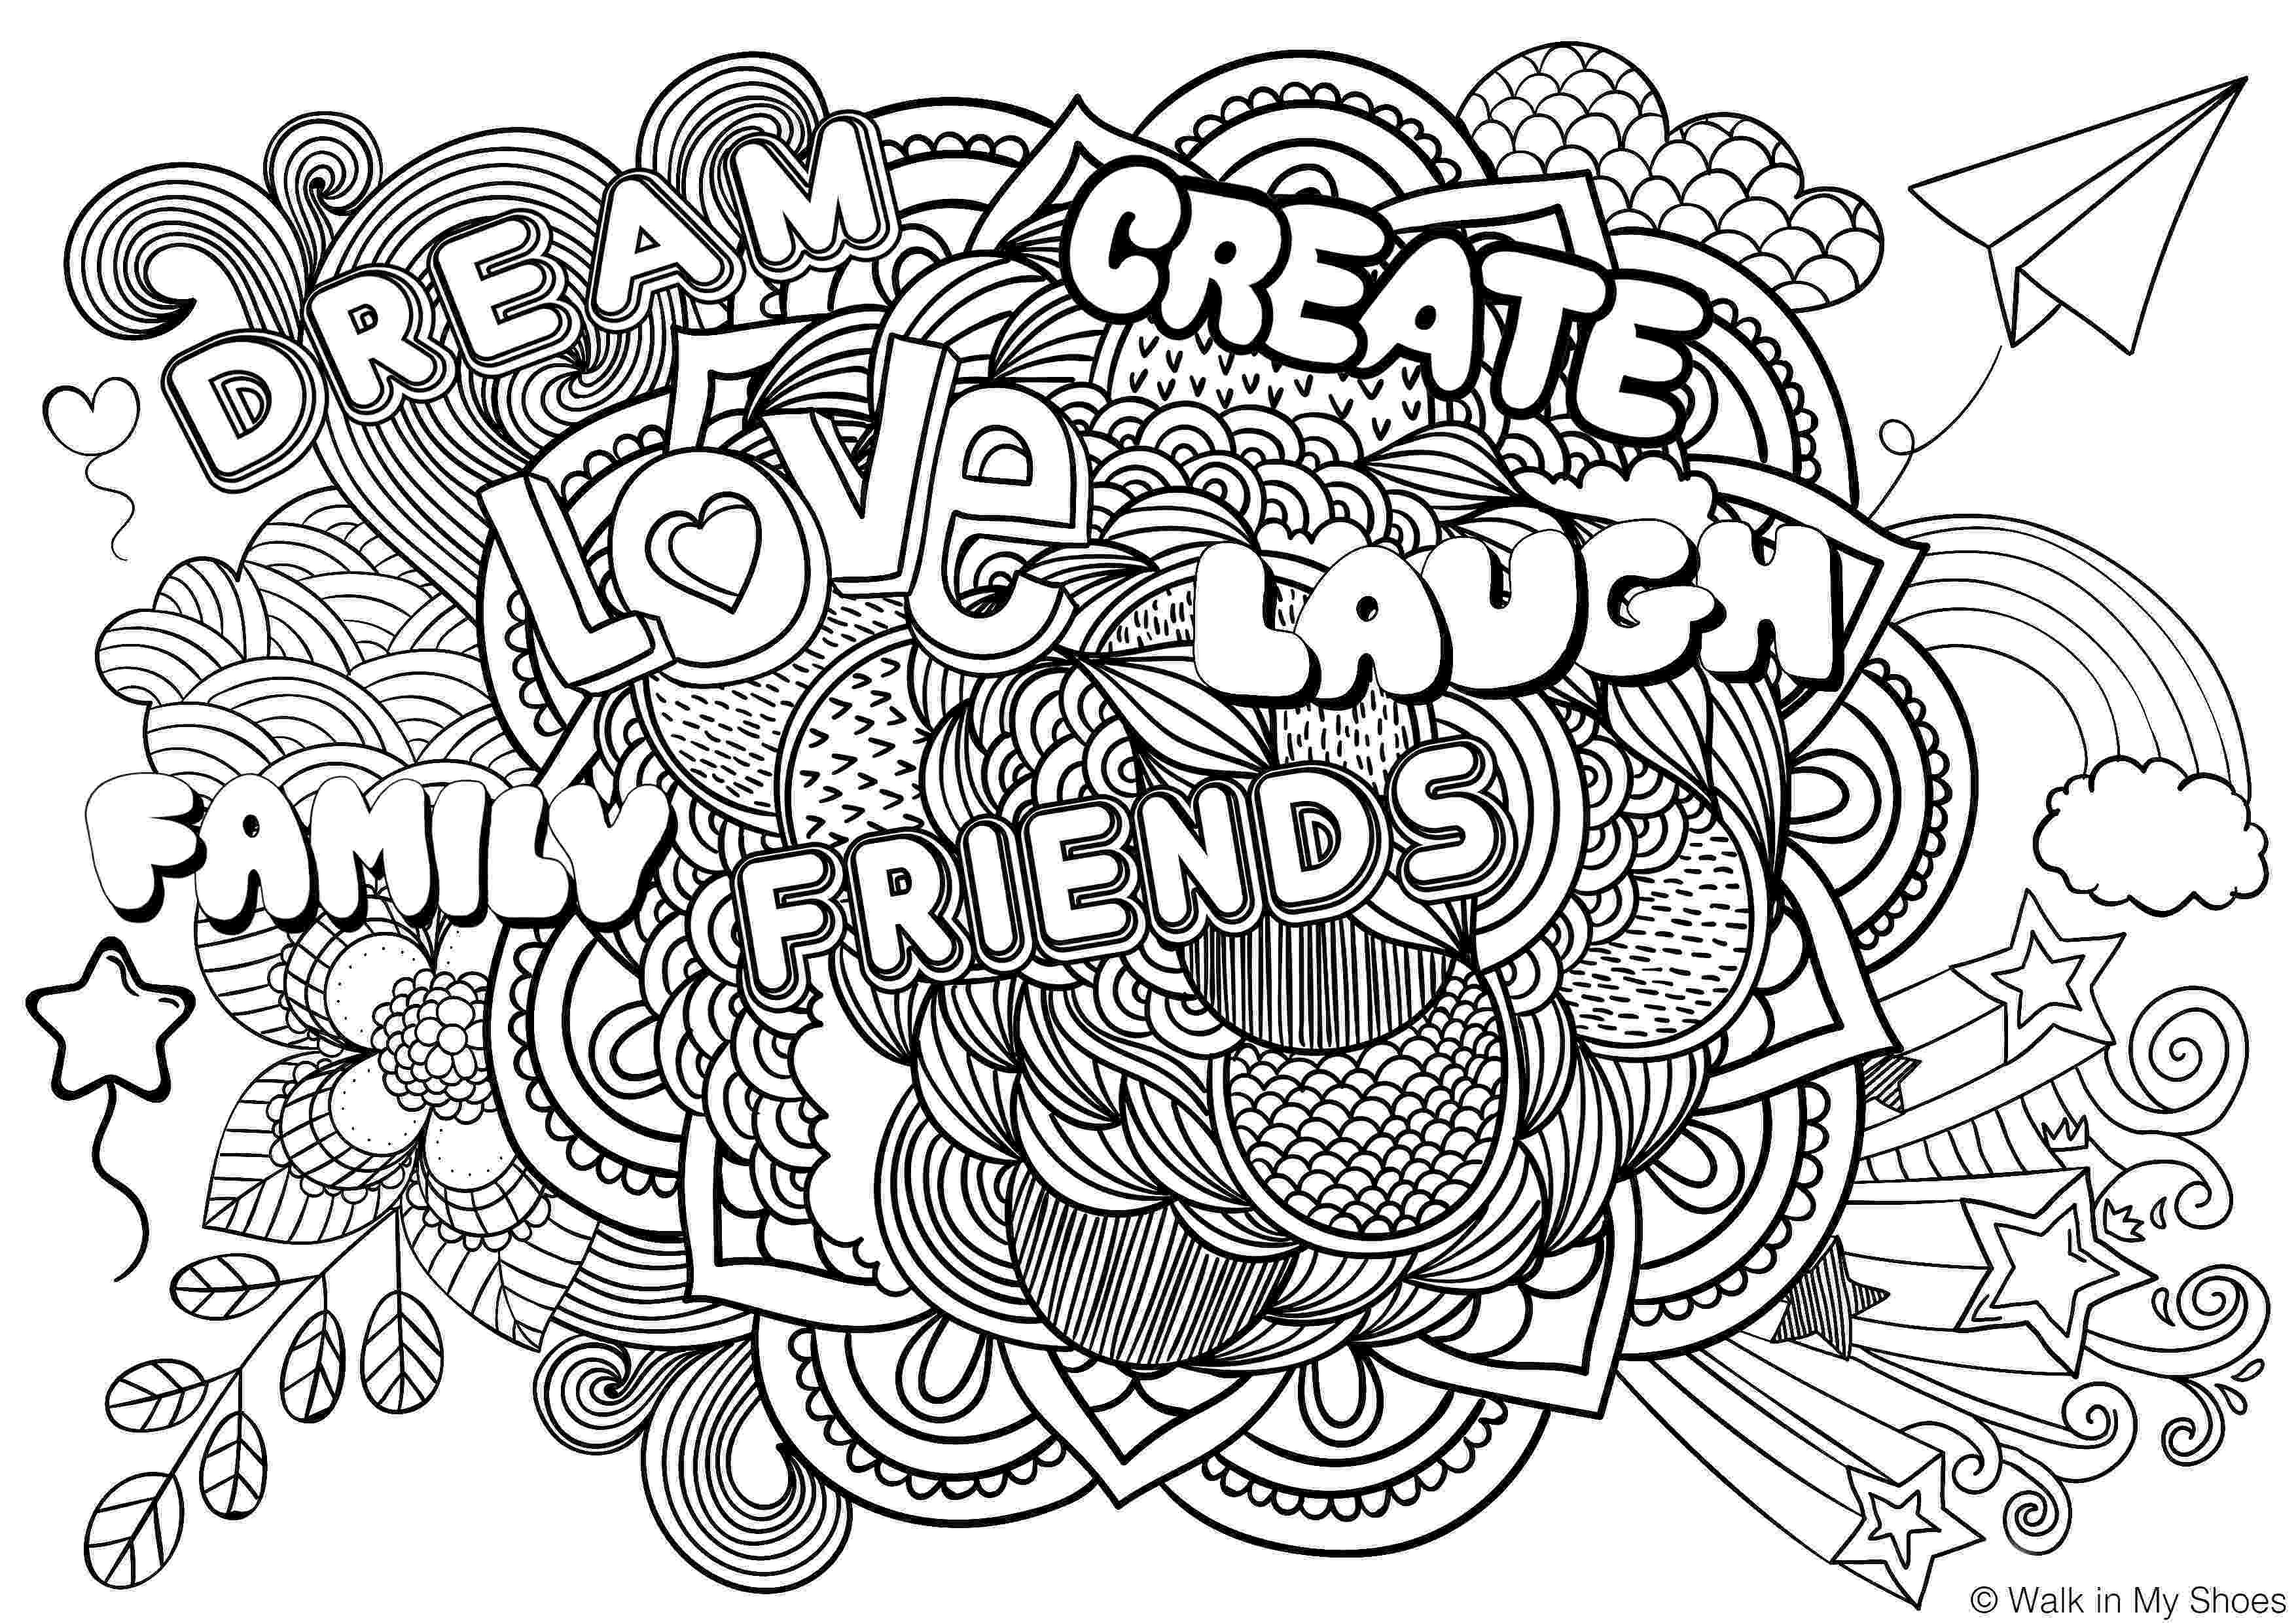 mindfulness colouring pages what do you do to mindyourselfie mindfulness colouring mindfulness colouring pages